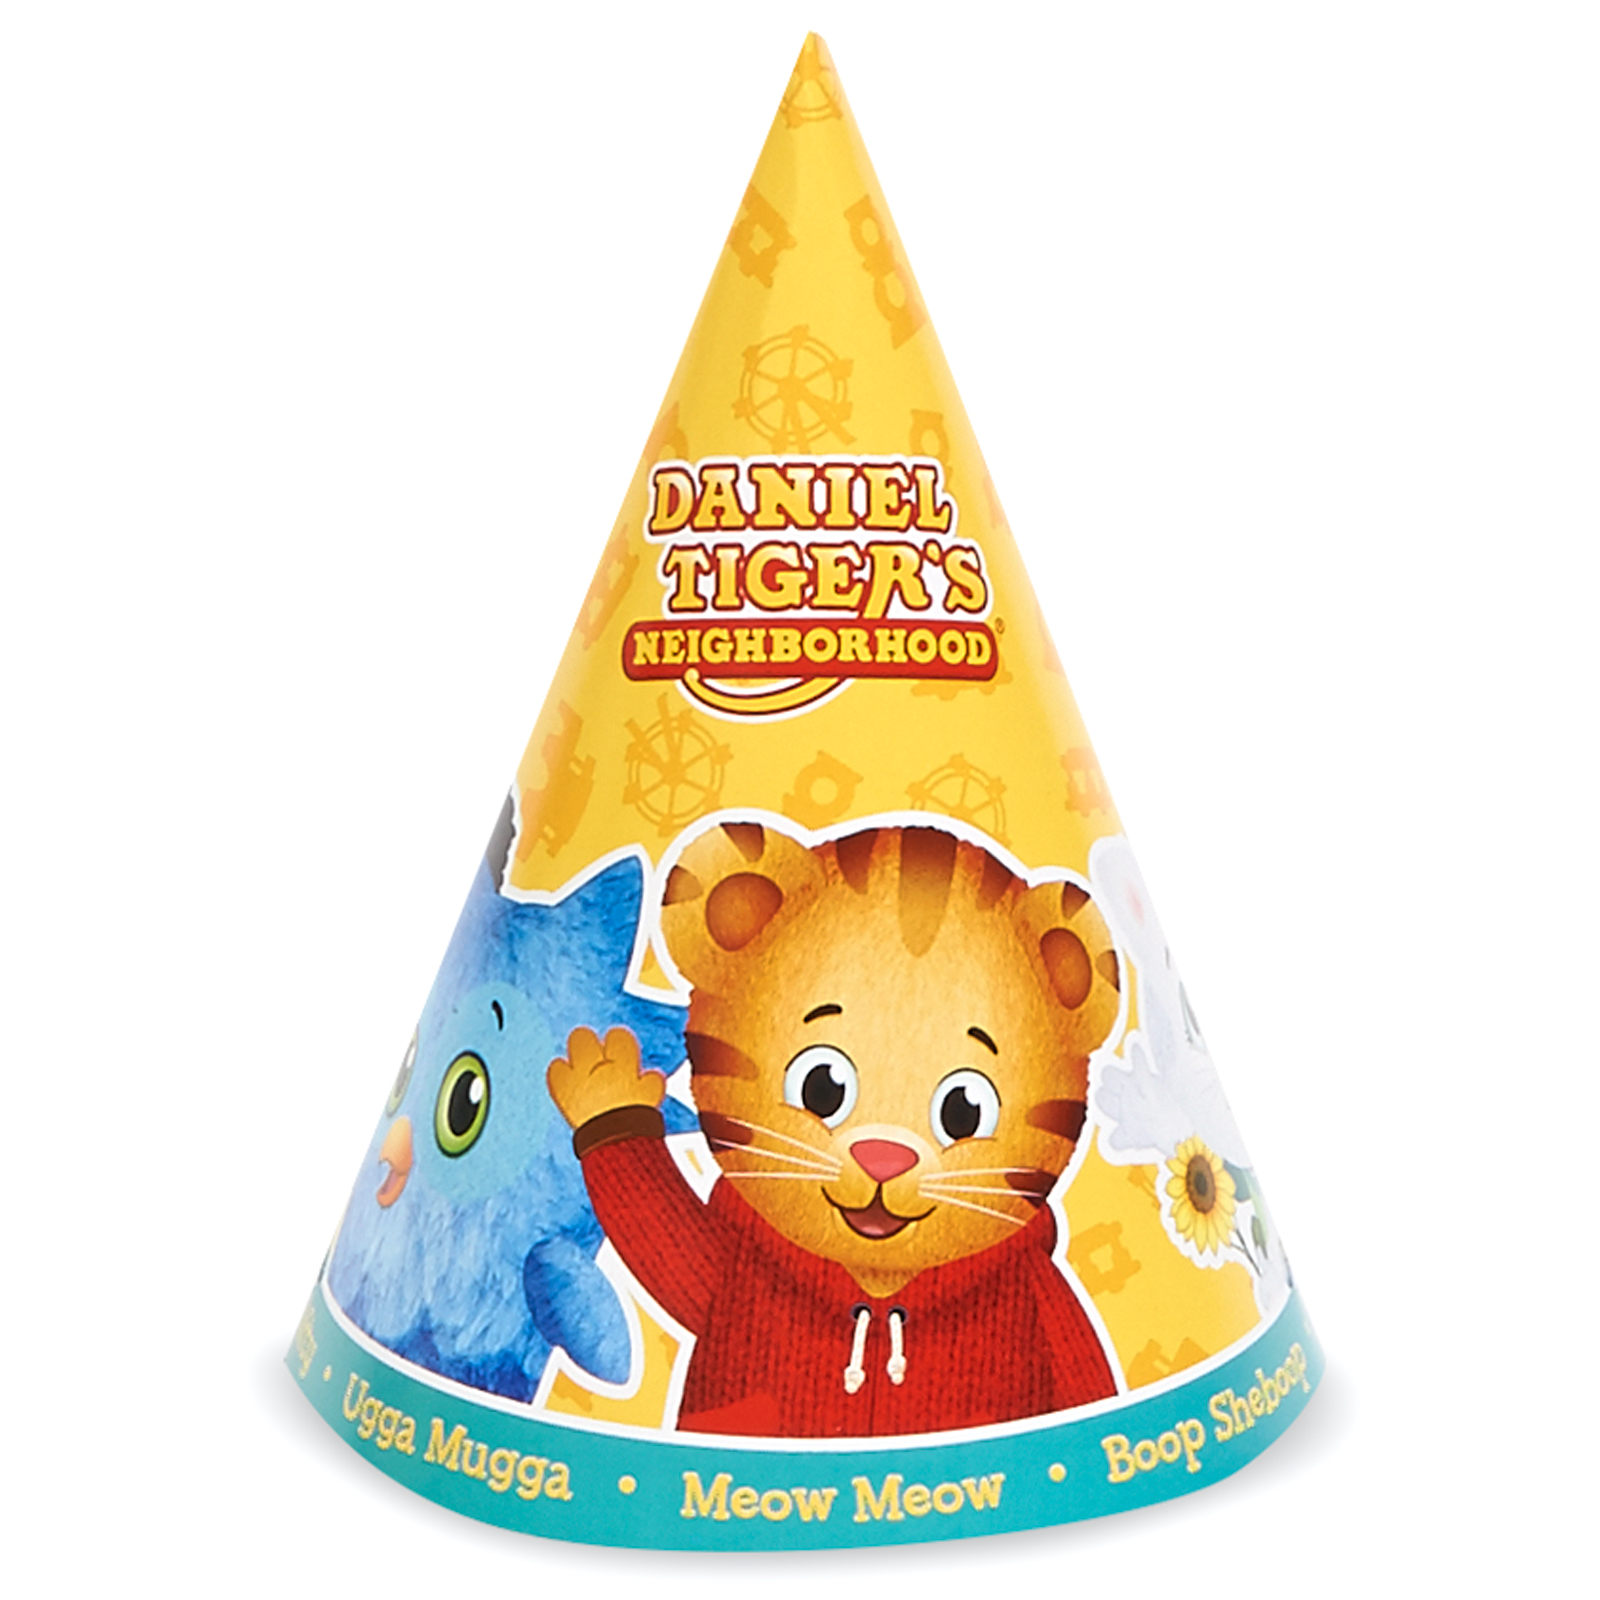 Daniel Tiger'S Neighborhood Party Supplies 16 Pack Cone Party Hats